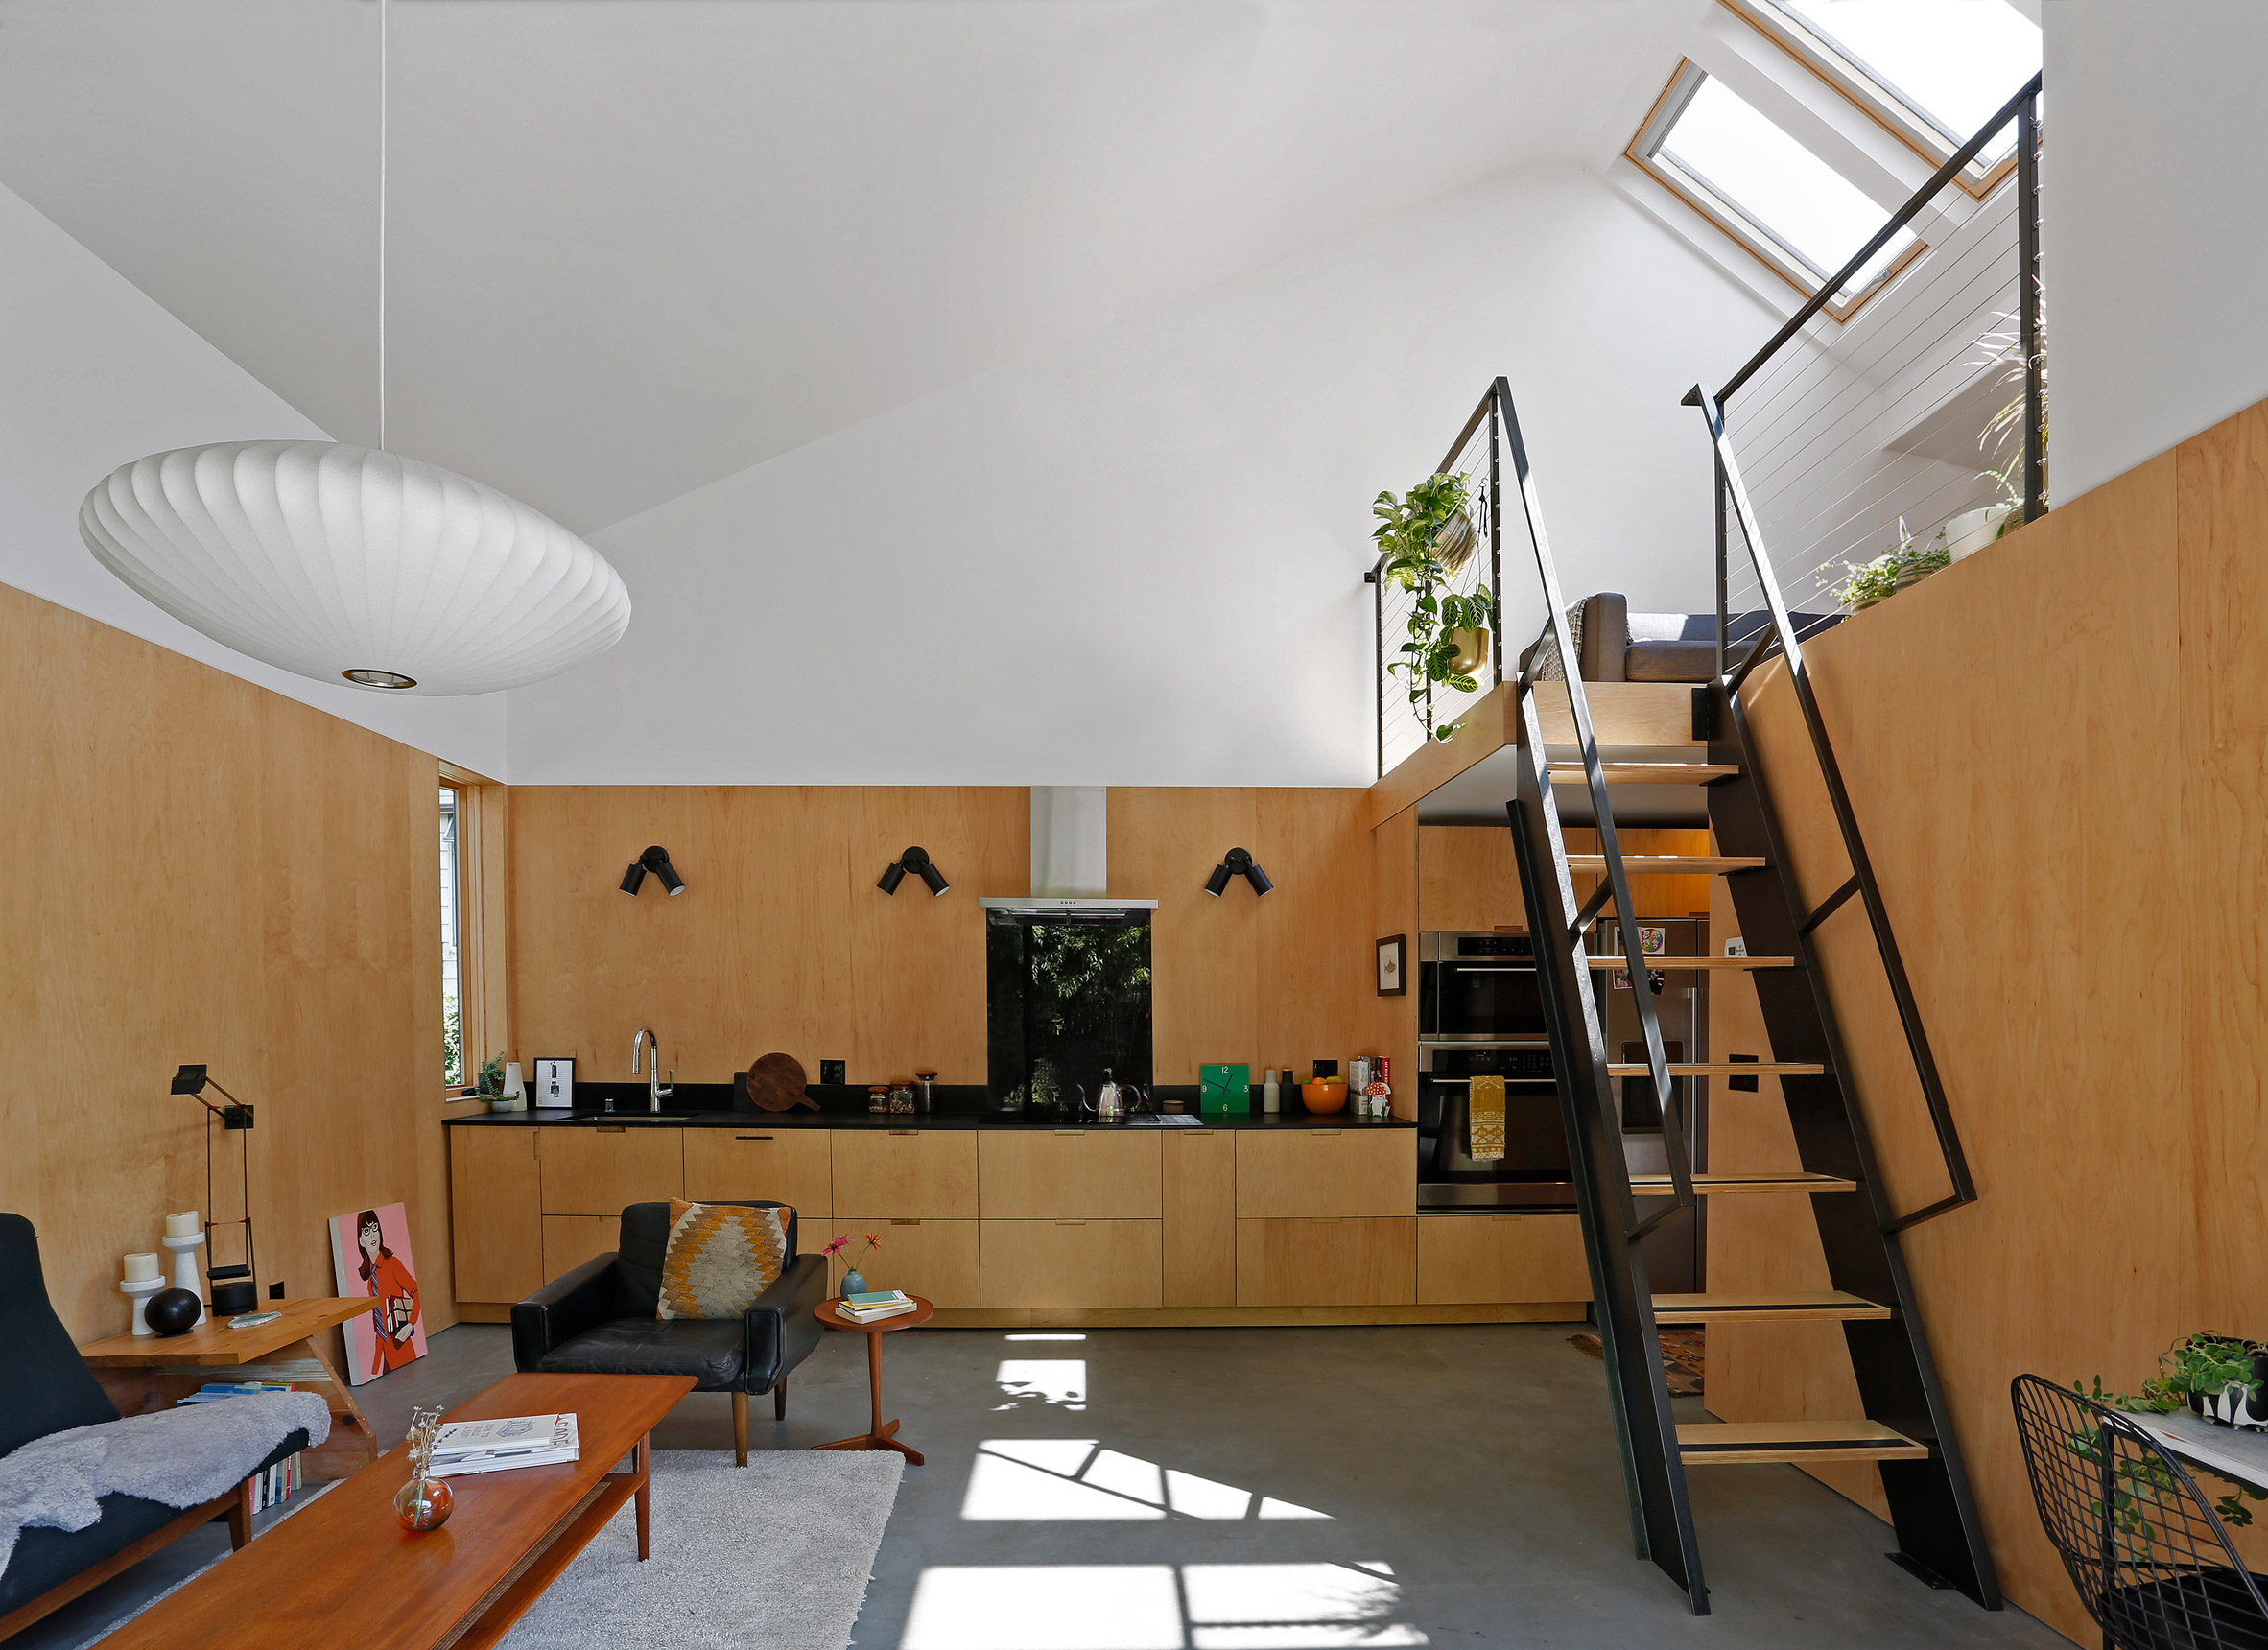 alley-cat-detached-auxiliary-dwelling-unit-shed-seattle-washingtondezeen2364col3-15850229283711510252870.jpg